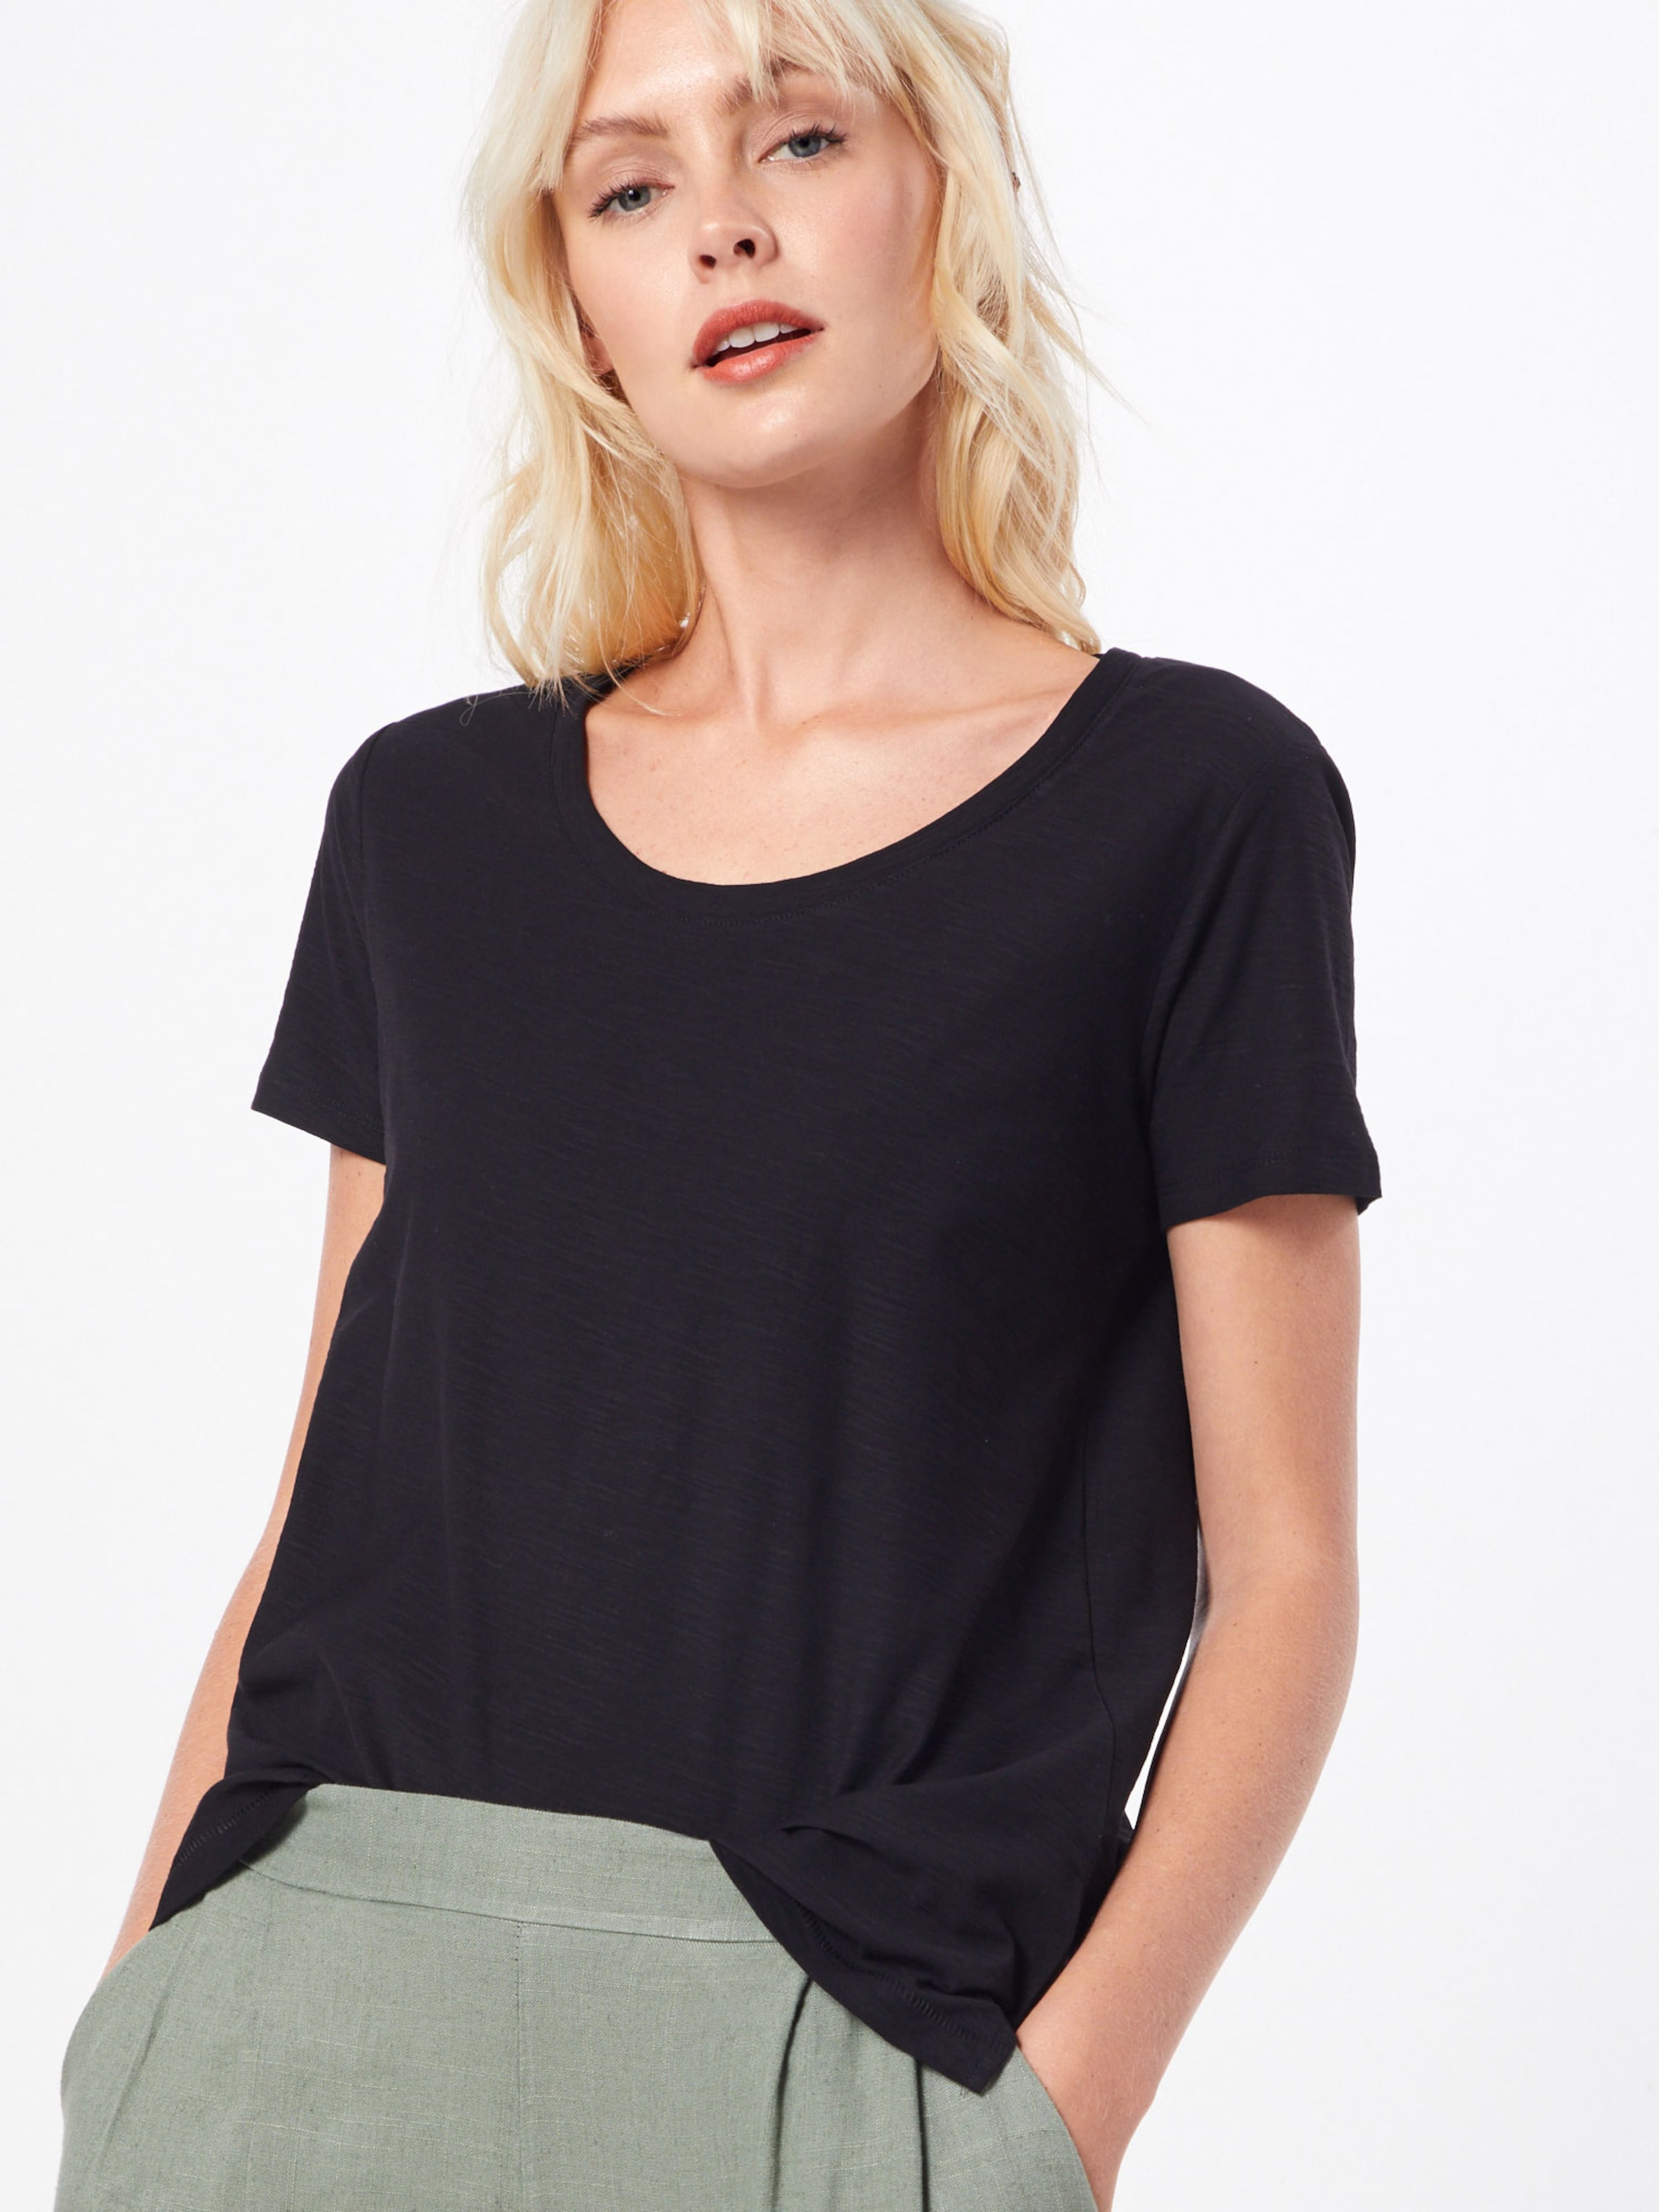 Red S oliver shirt Schwarz T Label In 0Nnmw8